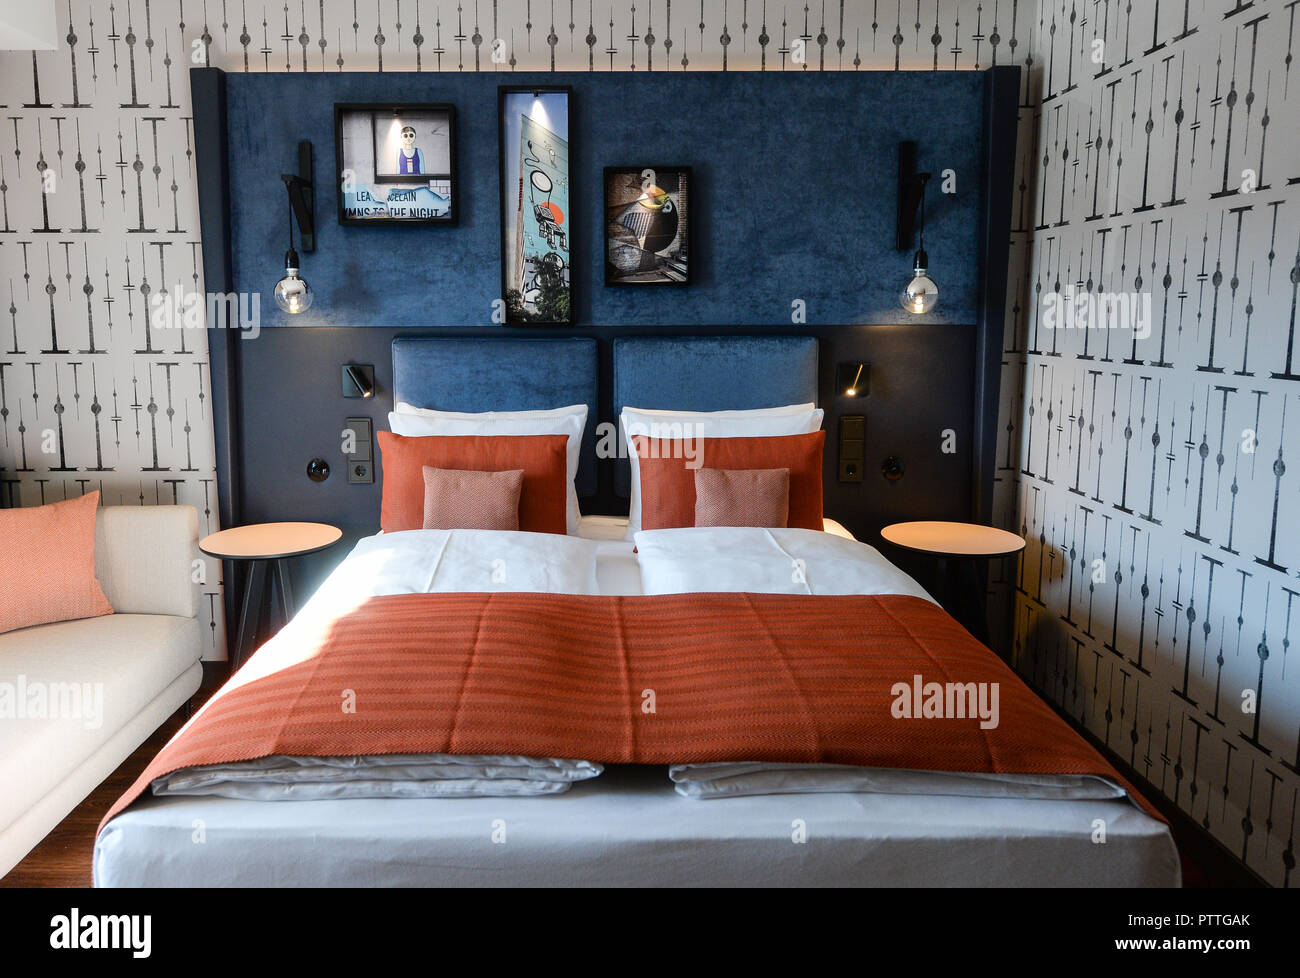 11 October 2018, Berlin: View into a room of the Upper Upscale Hotel Indigo Berlin at Mercedes Platz. The square is located in the new city quarter along the East Side Gallery. The official opening is on 13 October. Photo: Jens Kalaene/dpa - Stock Image